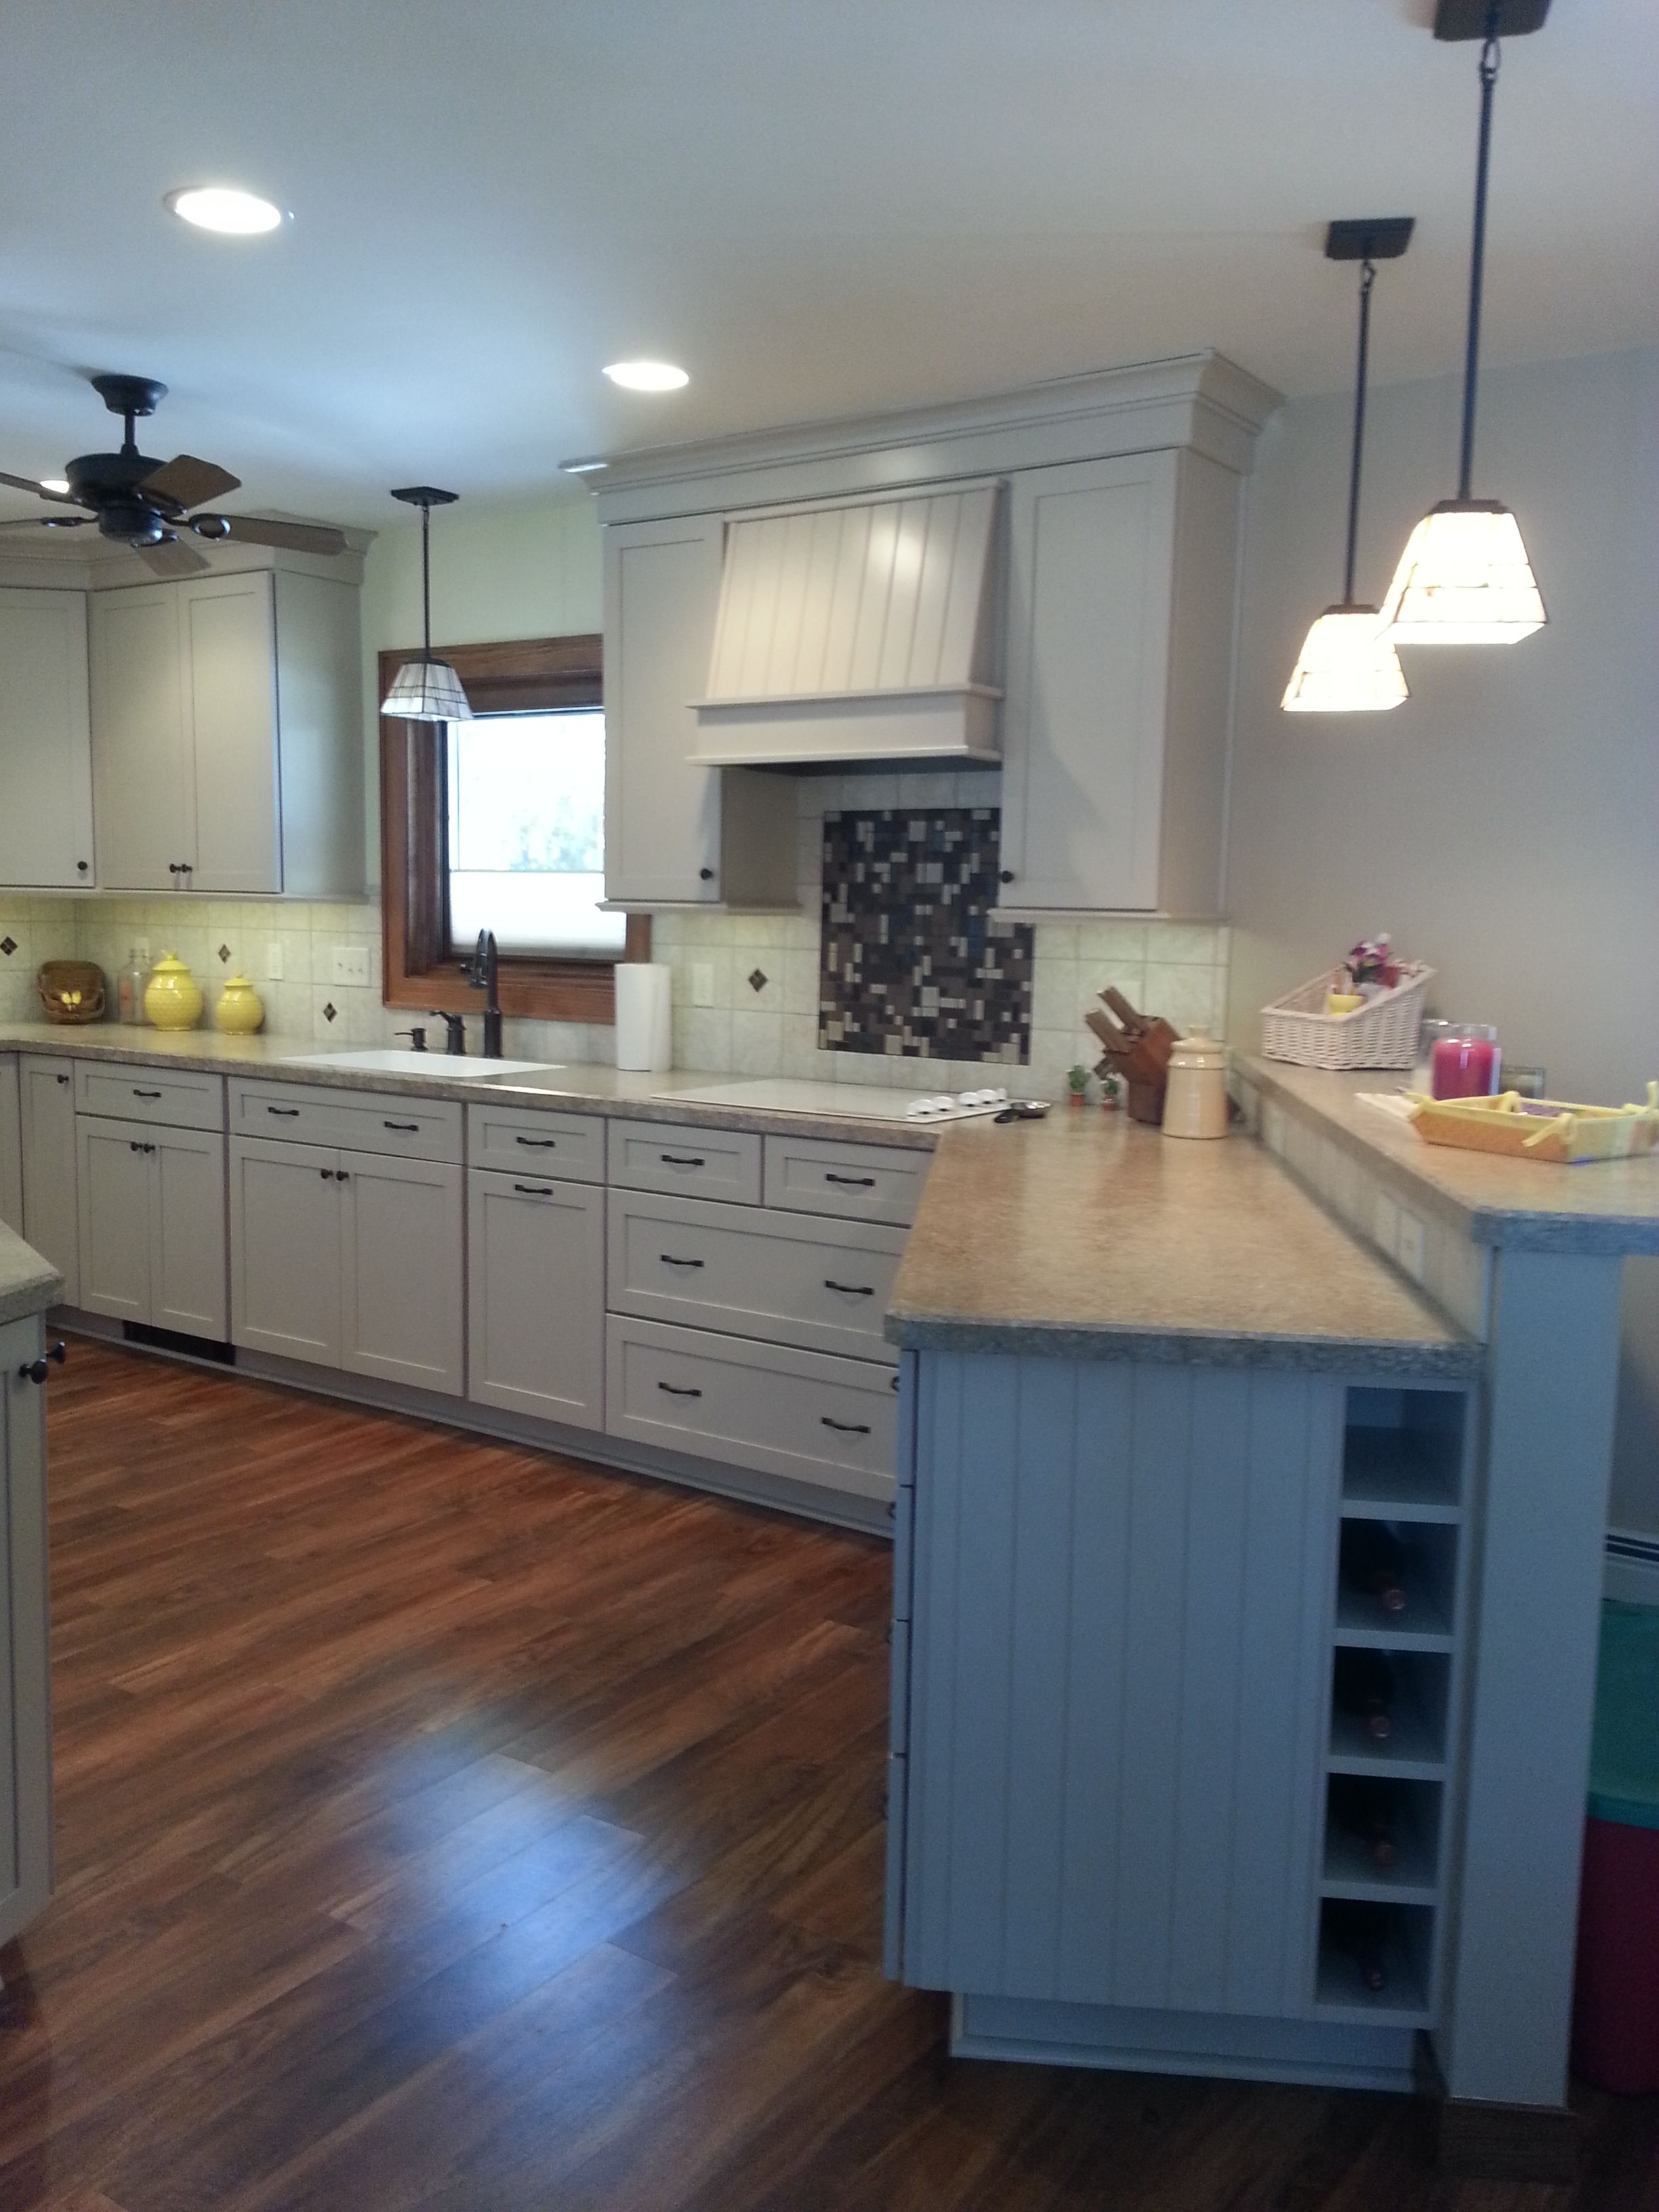 Gentil Kitchen Remodel: Kraftmaid Huntington Maple With Mushroom Finish Cabinets,  Mannington Adura Locksoild Acacia Natural